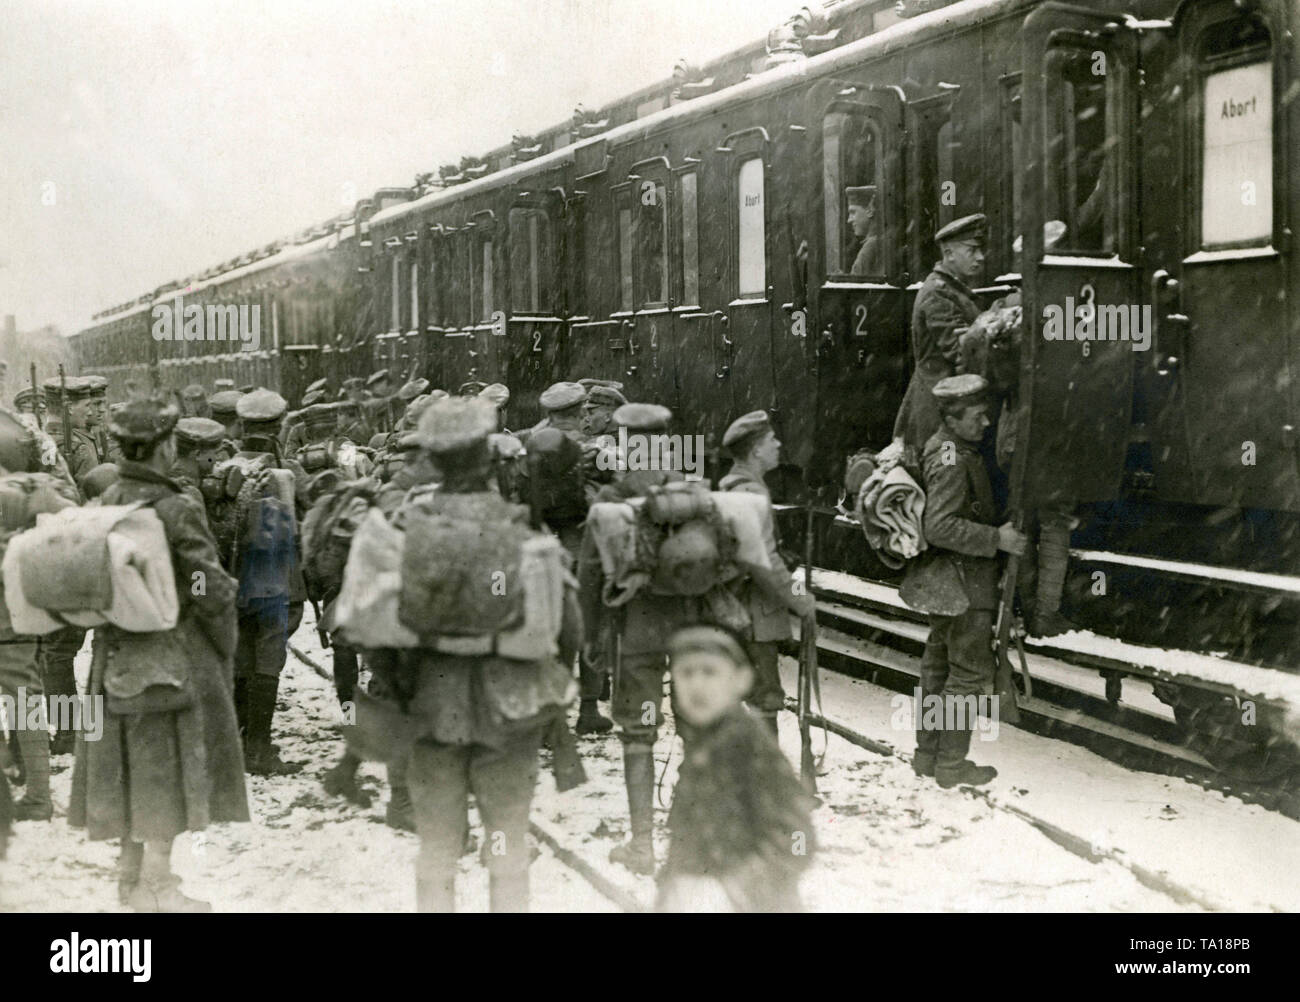 Soldiers from Adlershof are taken to the inner city of Berlin to support the government in the struggle with workers during the Berlin March fights. Here they get on the train in Adlershof. Stock Photo